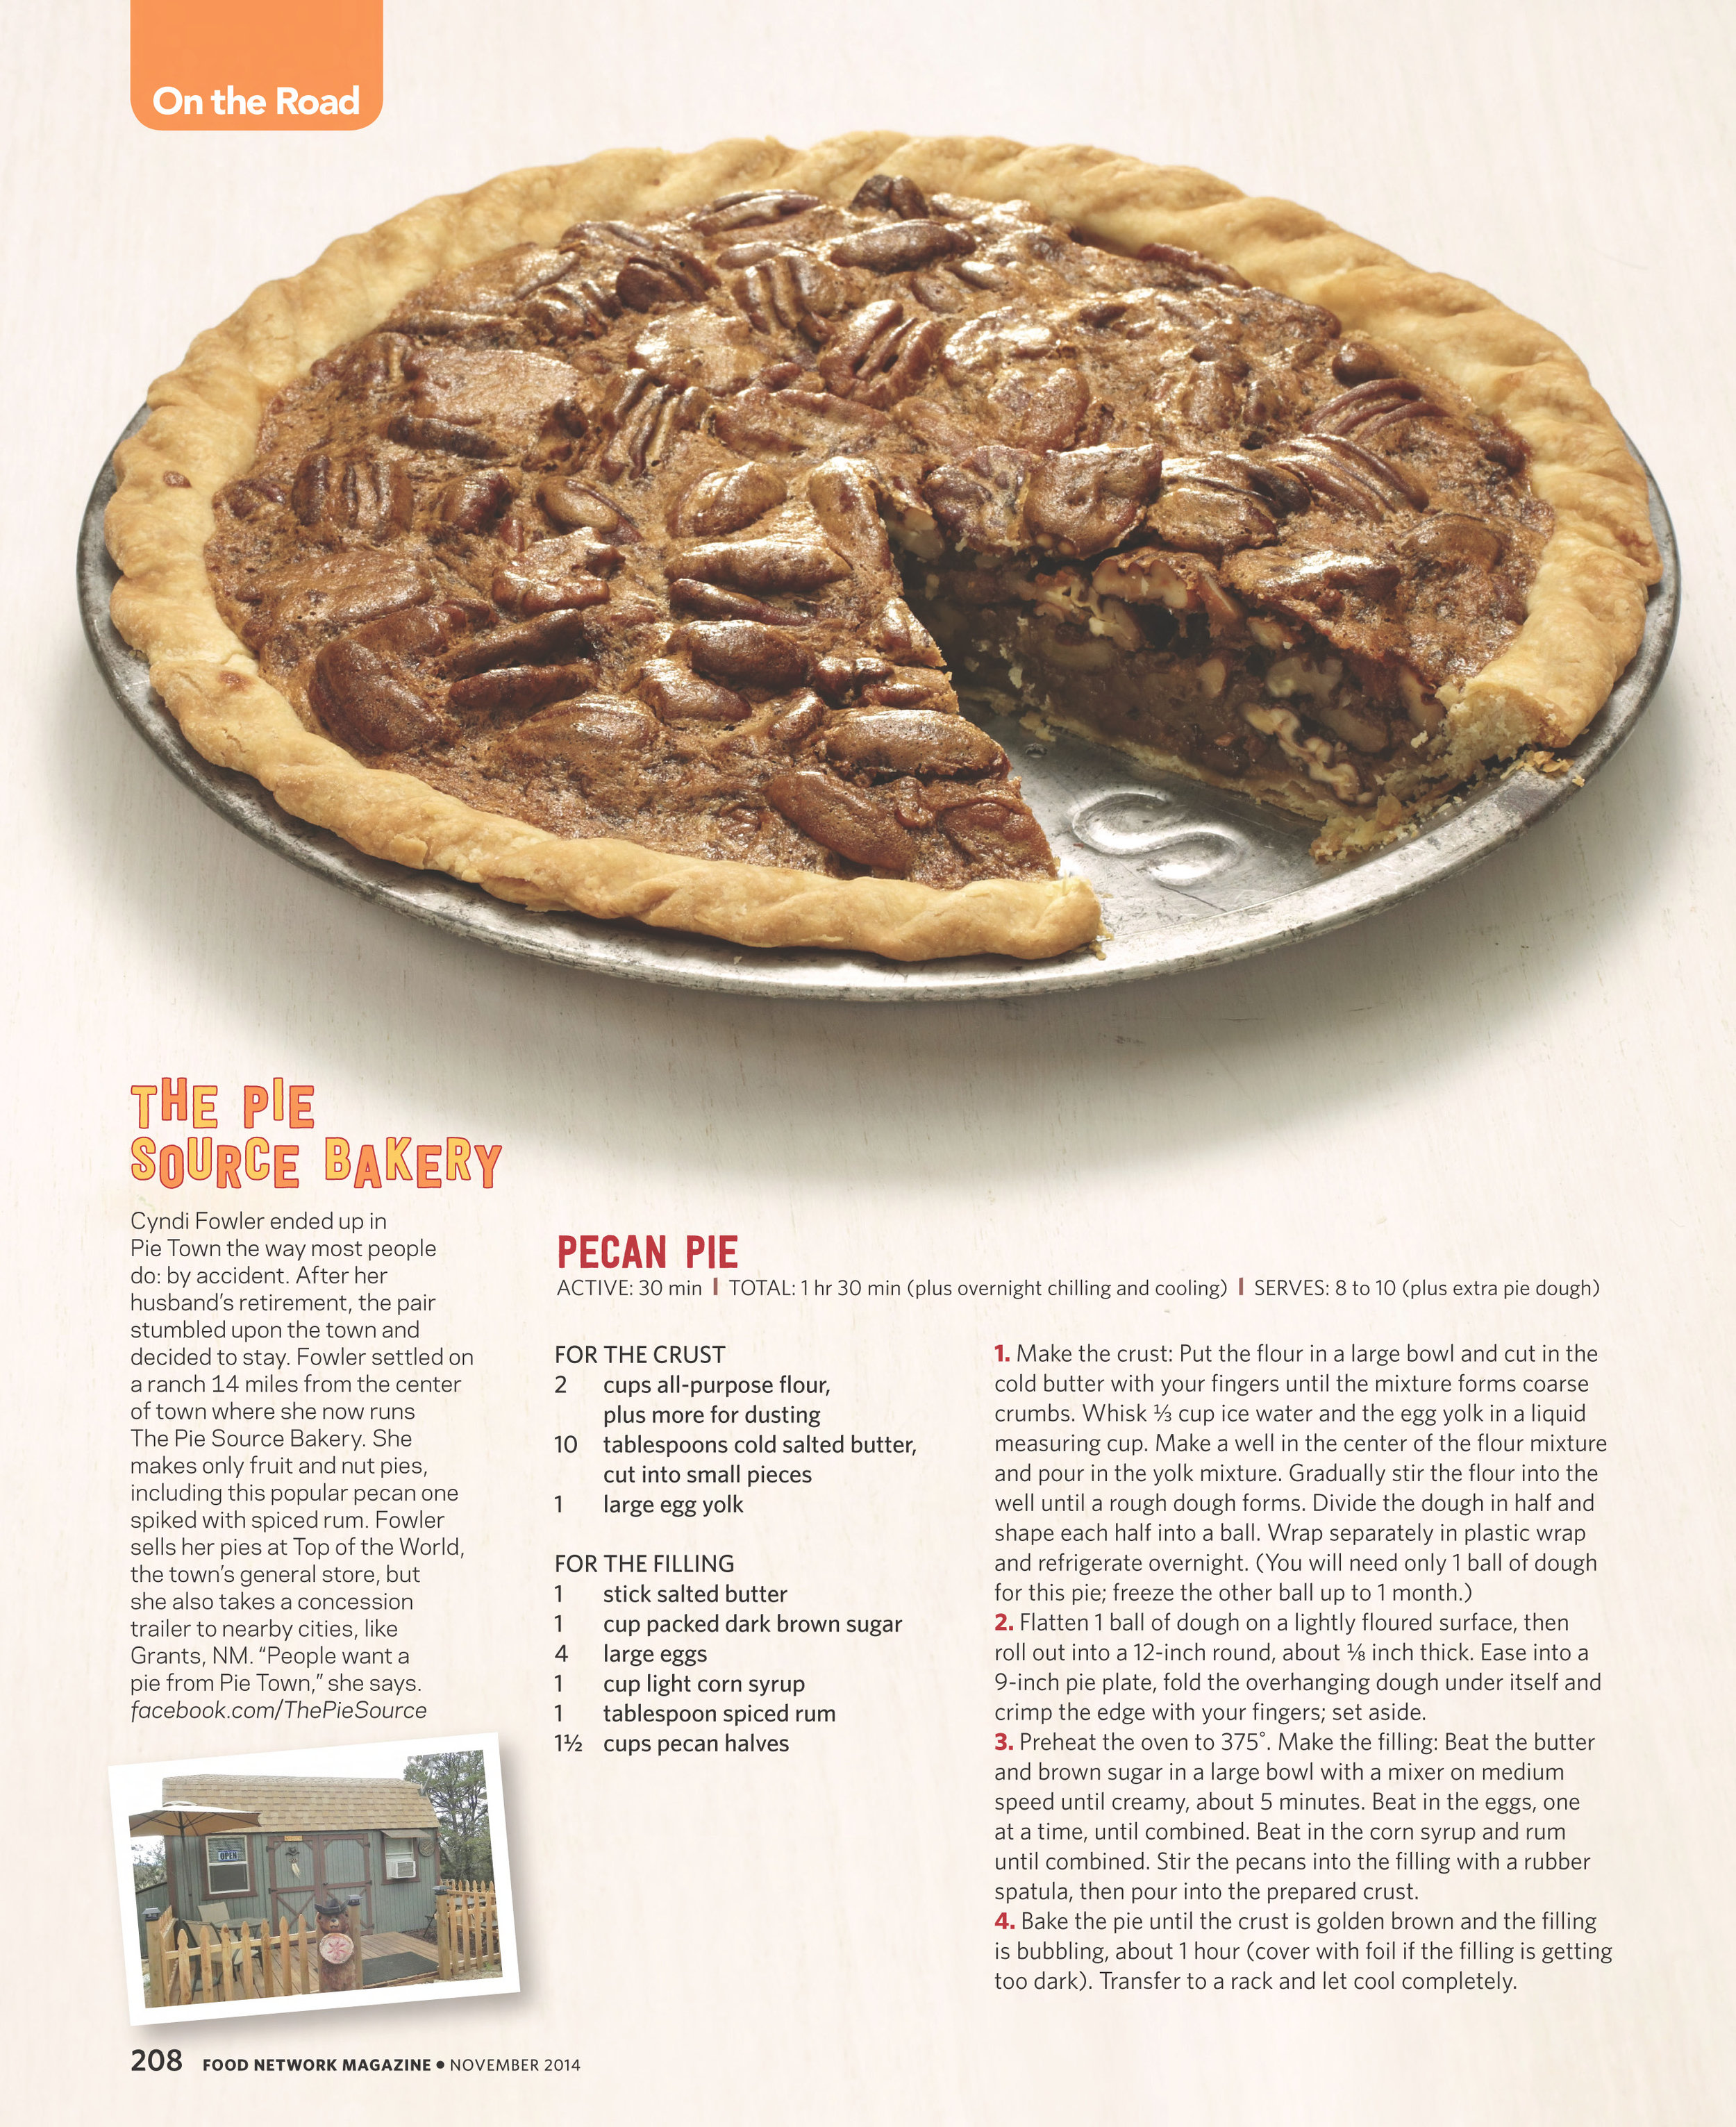 Pecan Pie photograph by Devon Jarvis for Food Network Magazine